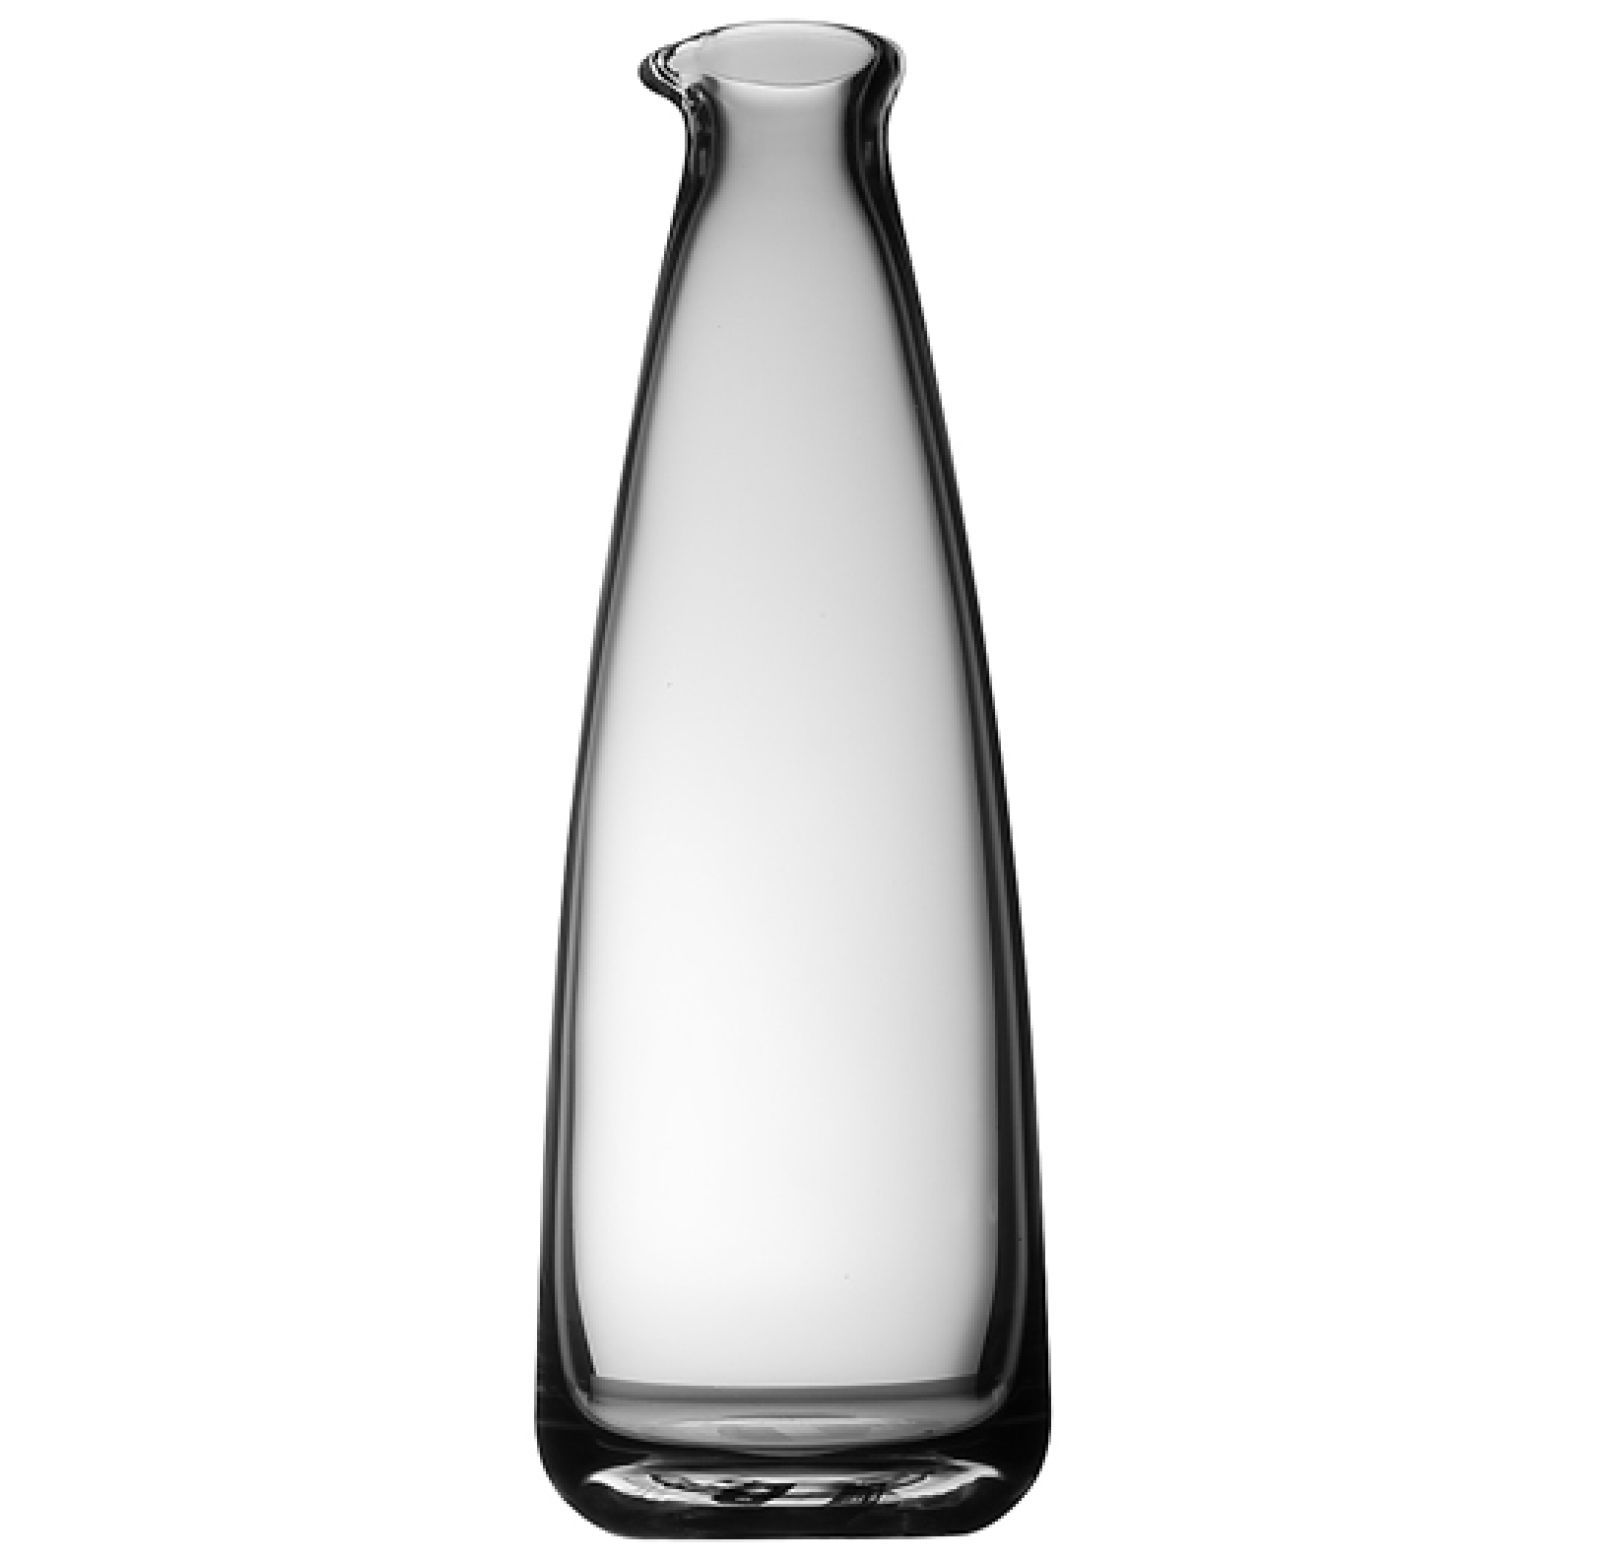 Tac 02 Bottle by Rosenthal | Michael C. Fina